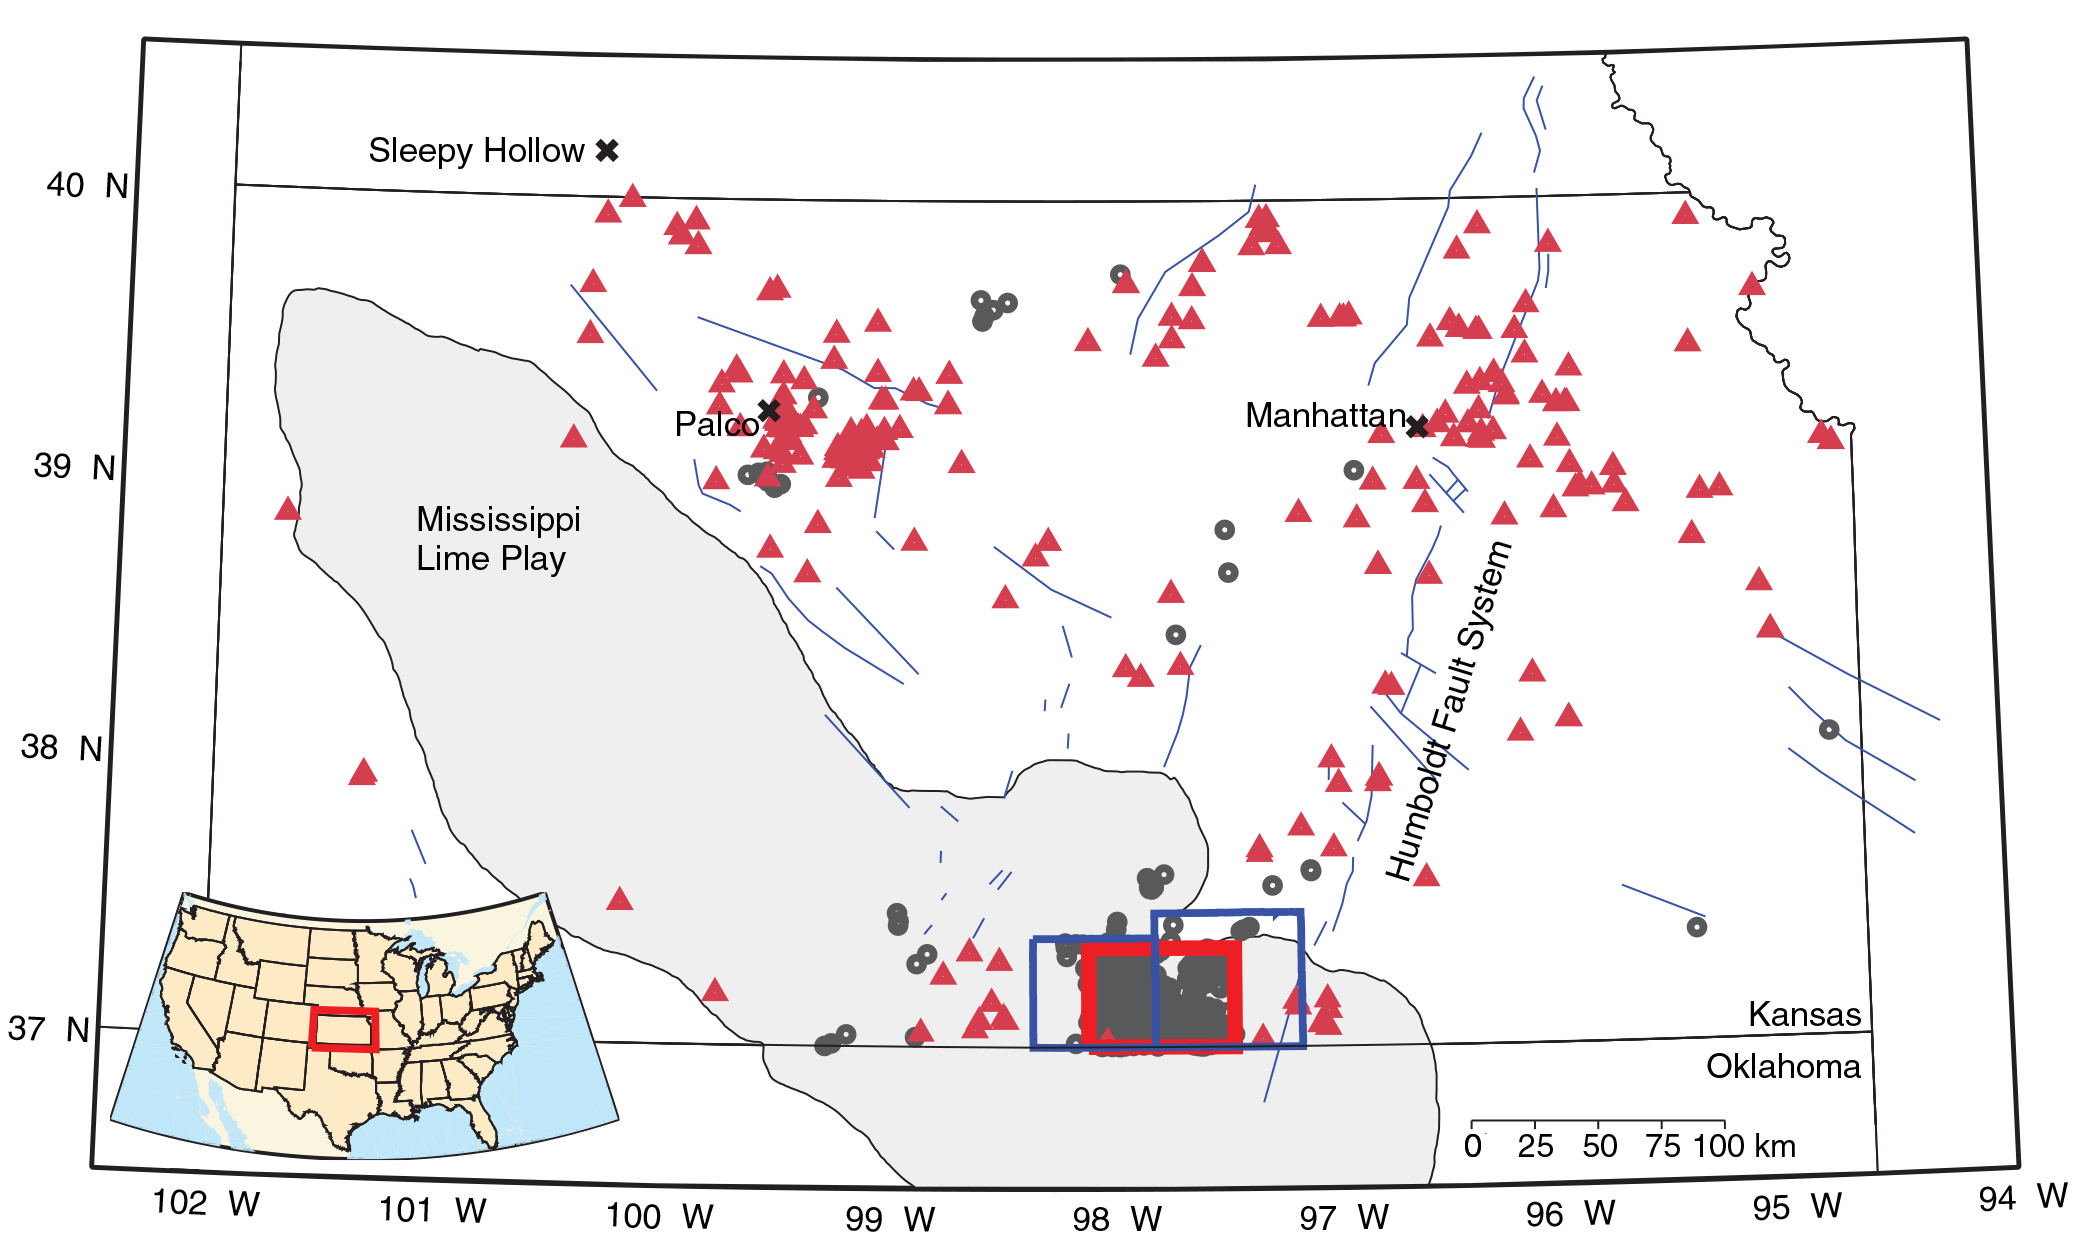 State Map Of Kansas And Oklahoma.Wastewater Injections Set Off A Kansas Earthquake Binge Ars Technica